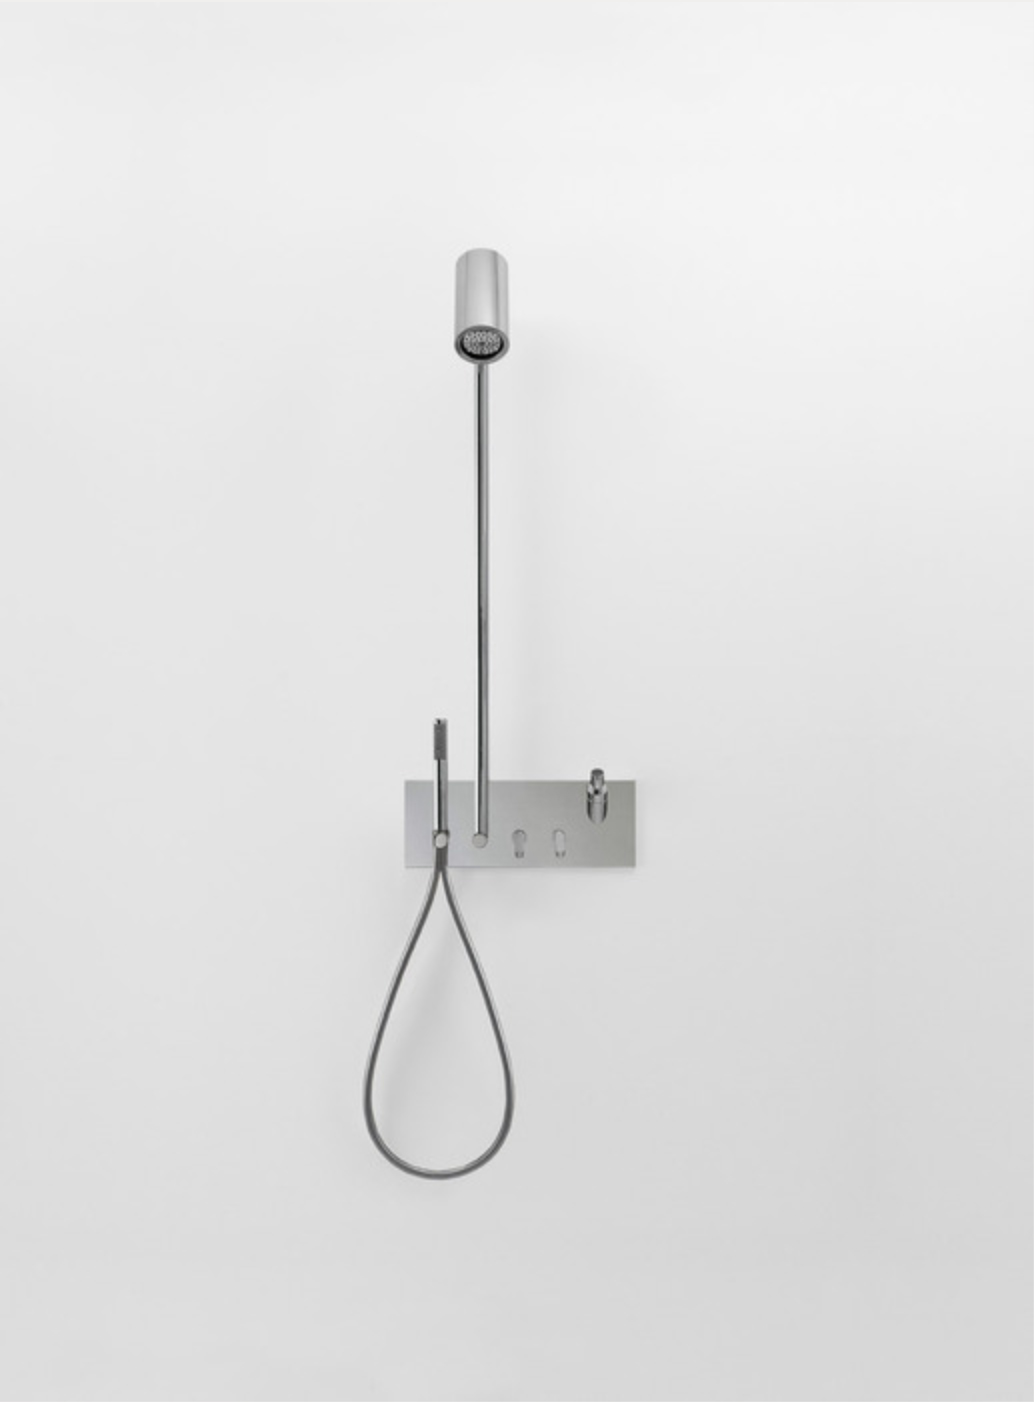 SQUARE(shower-tap-set)8